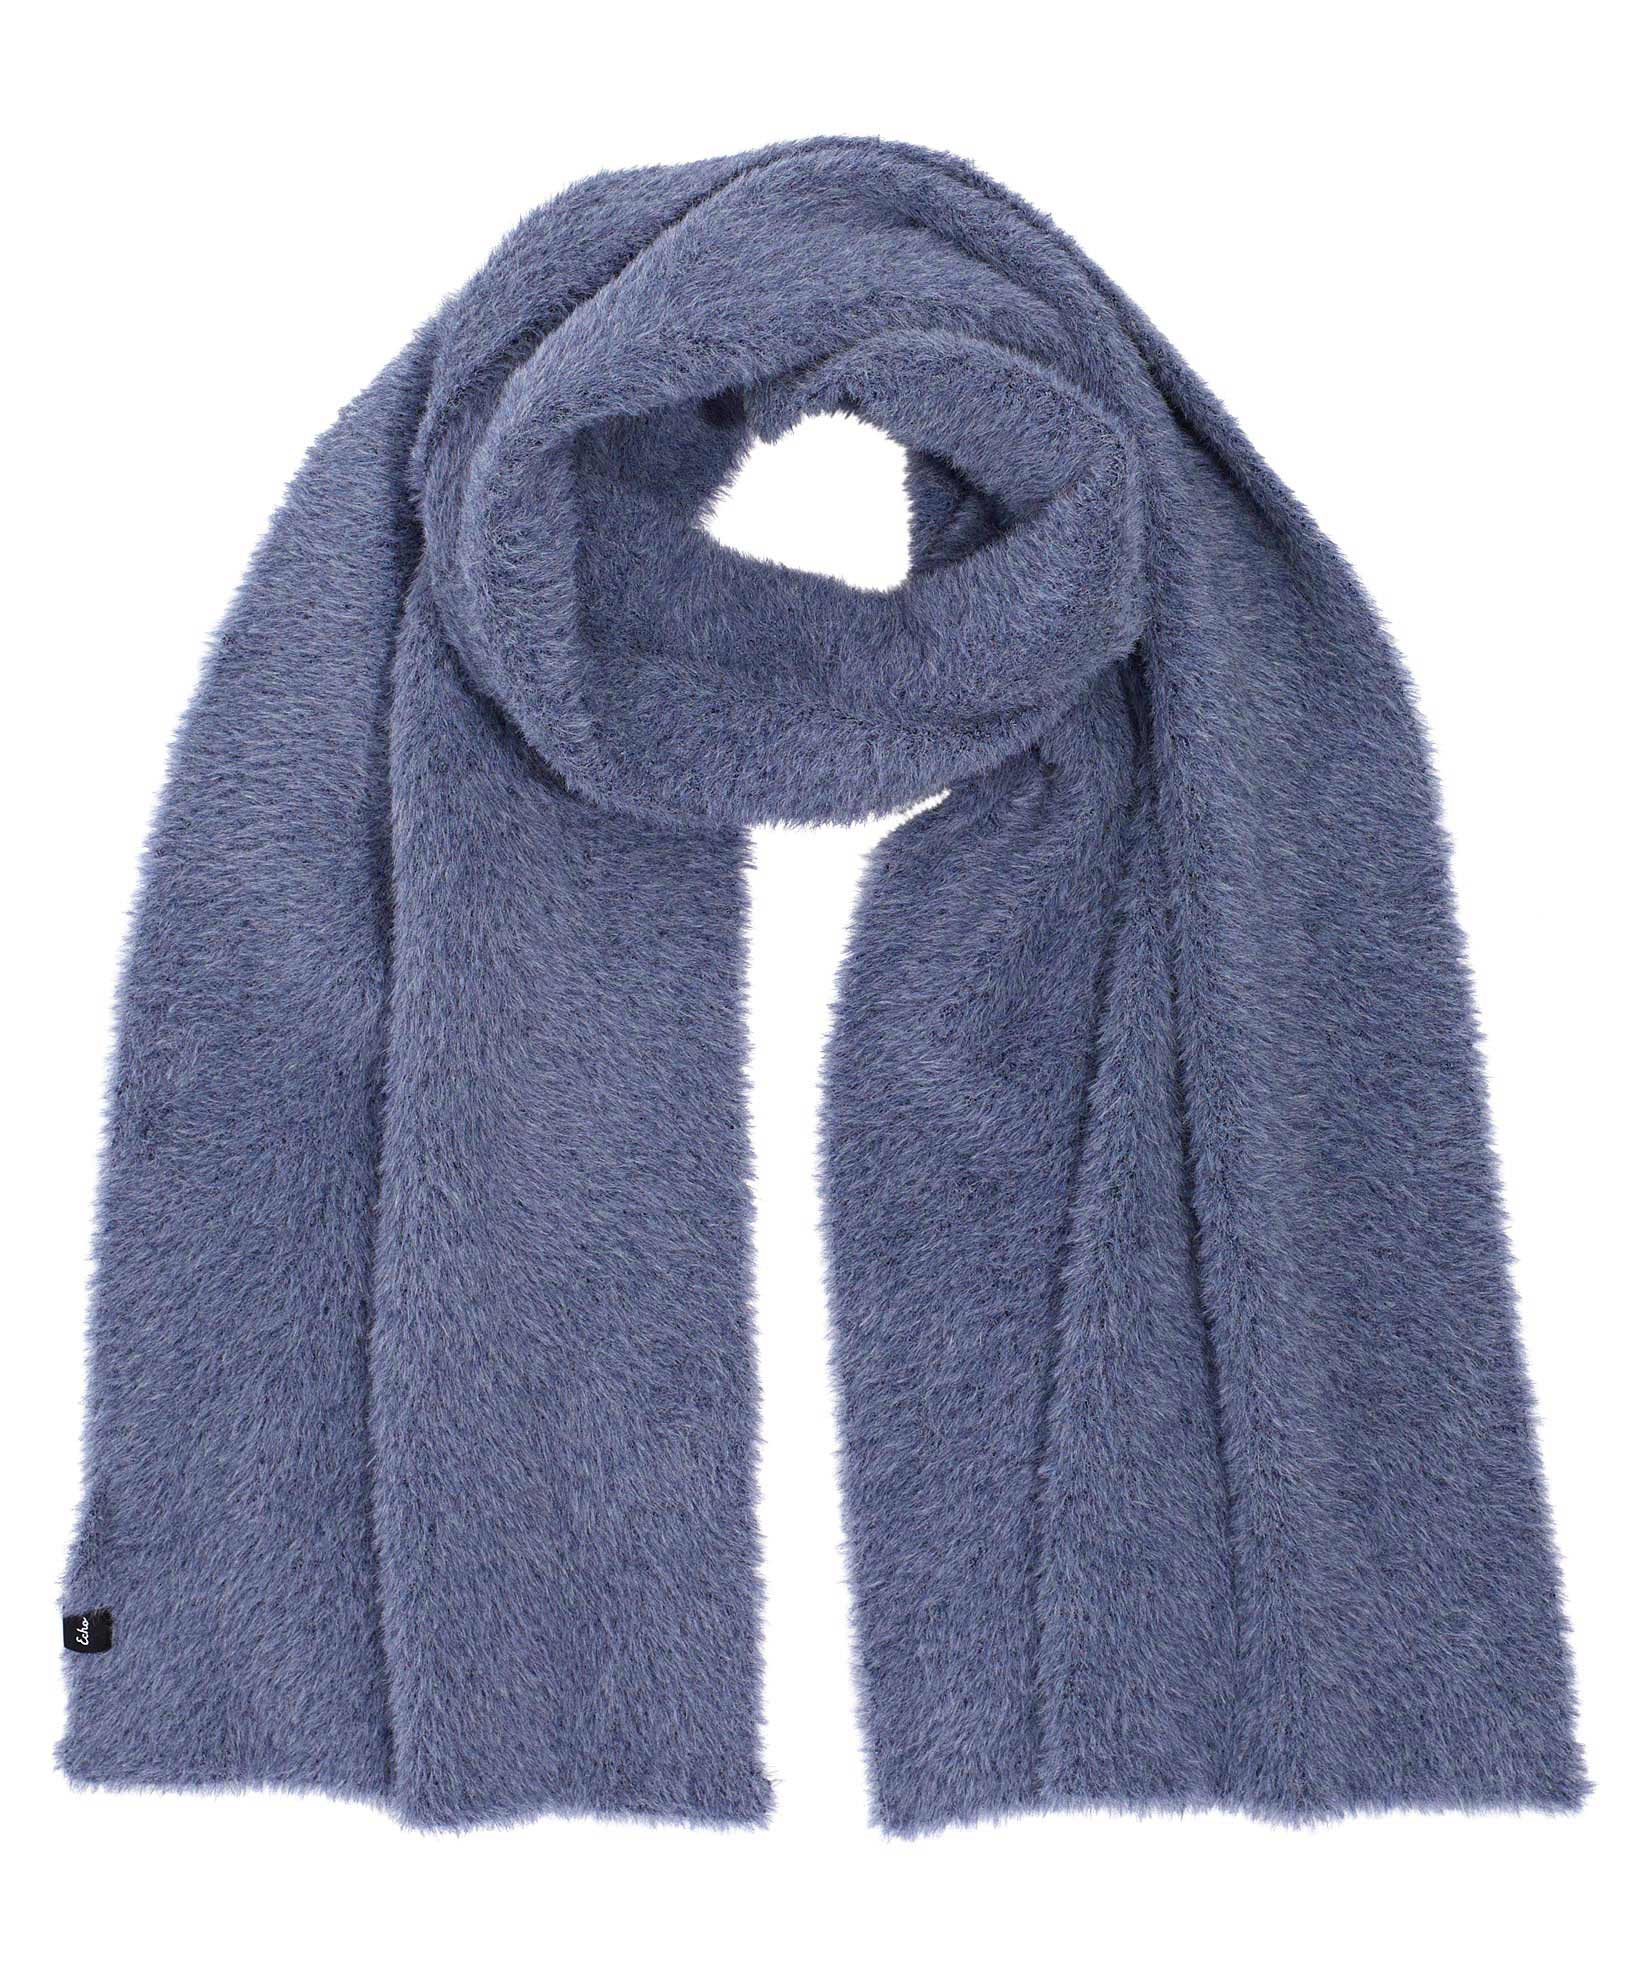 Navy - Brushed Furry Scarf